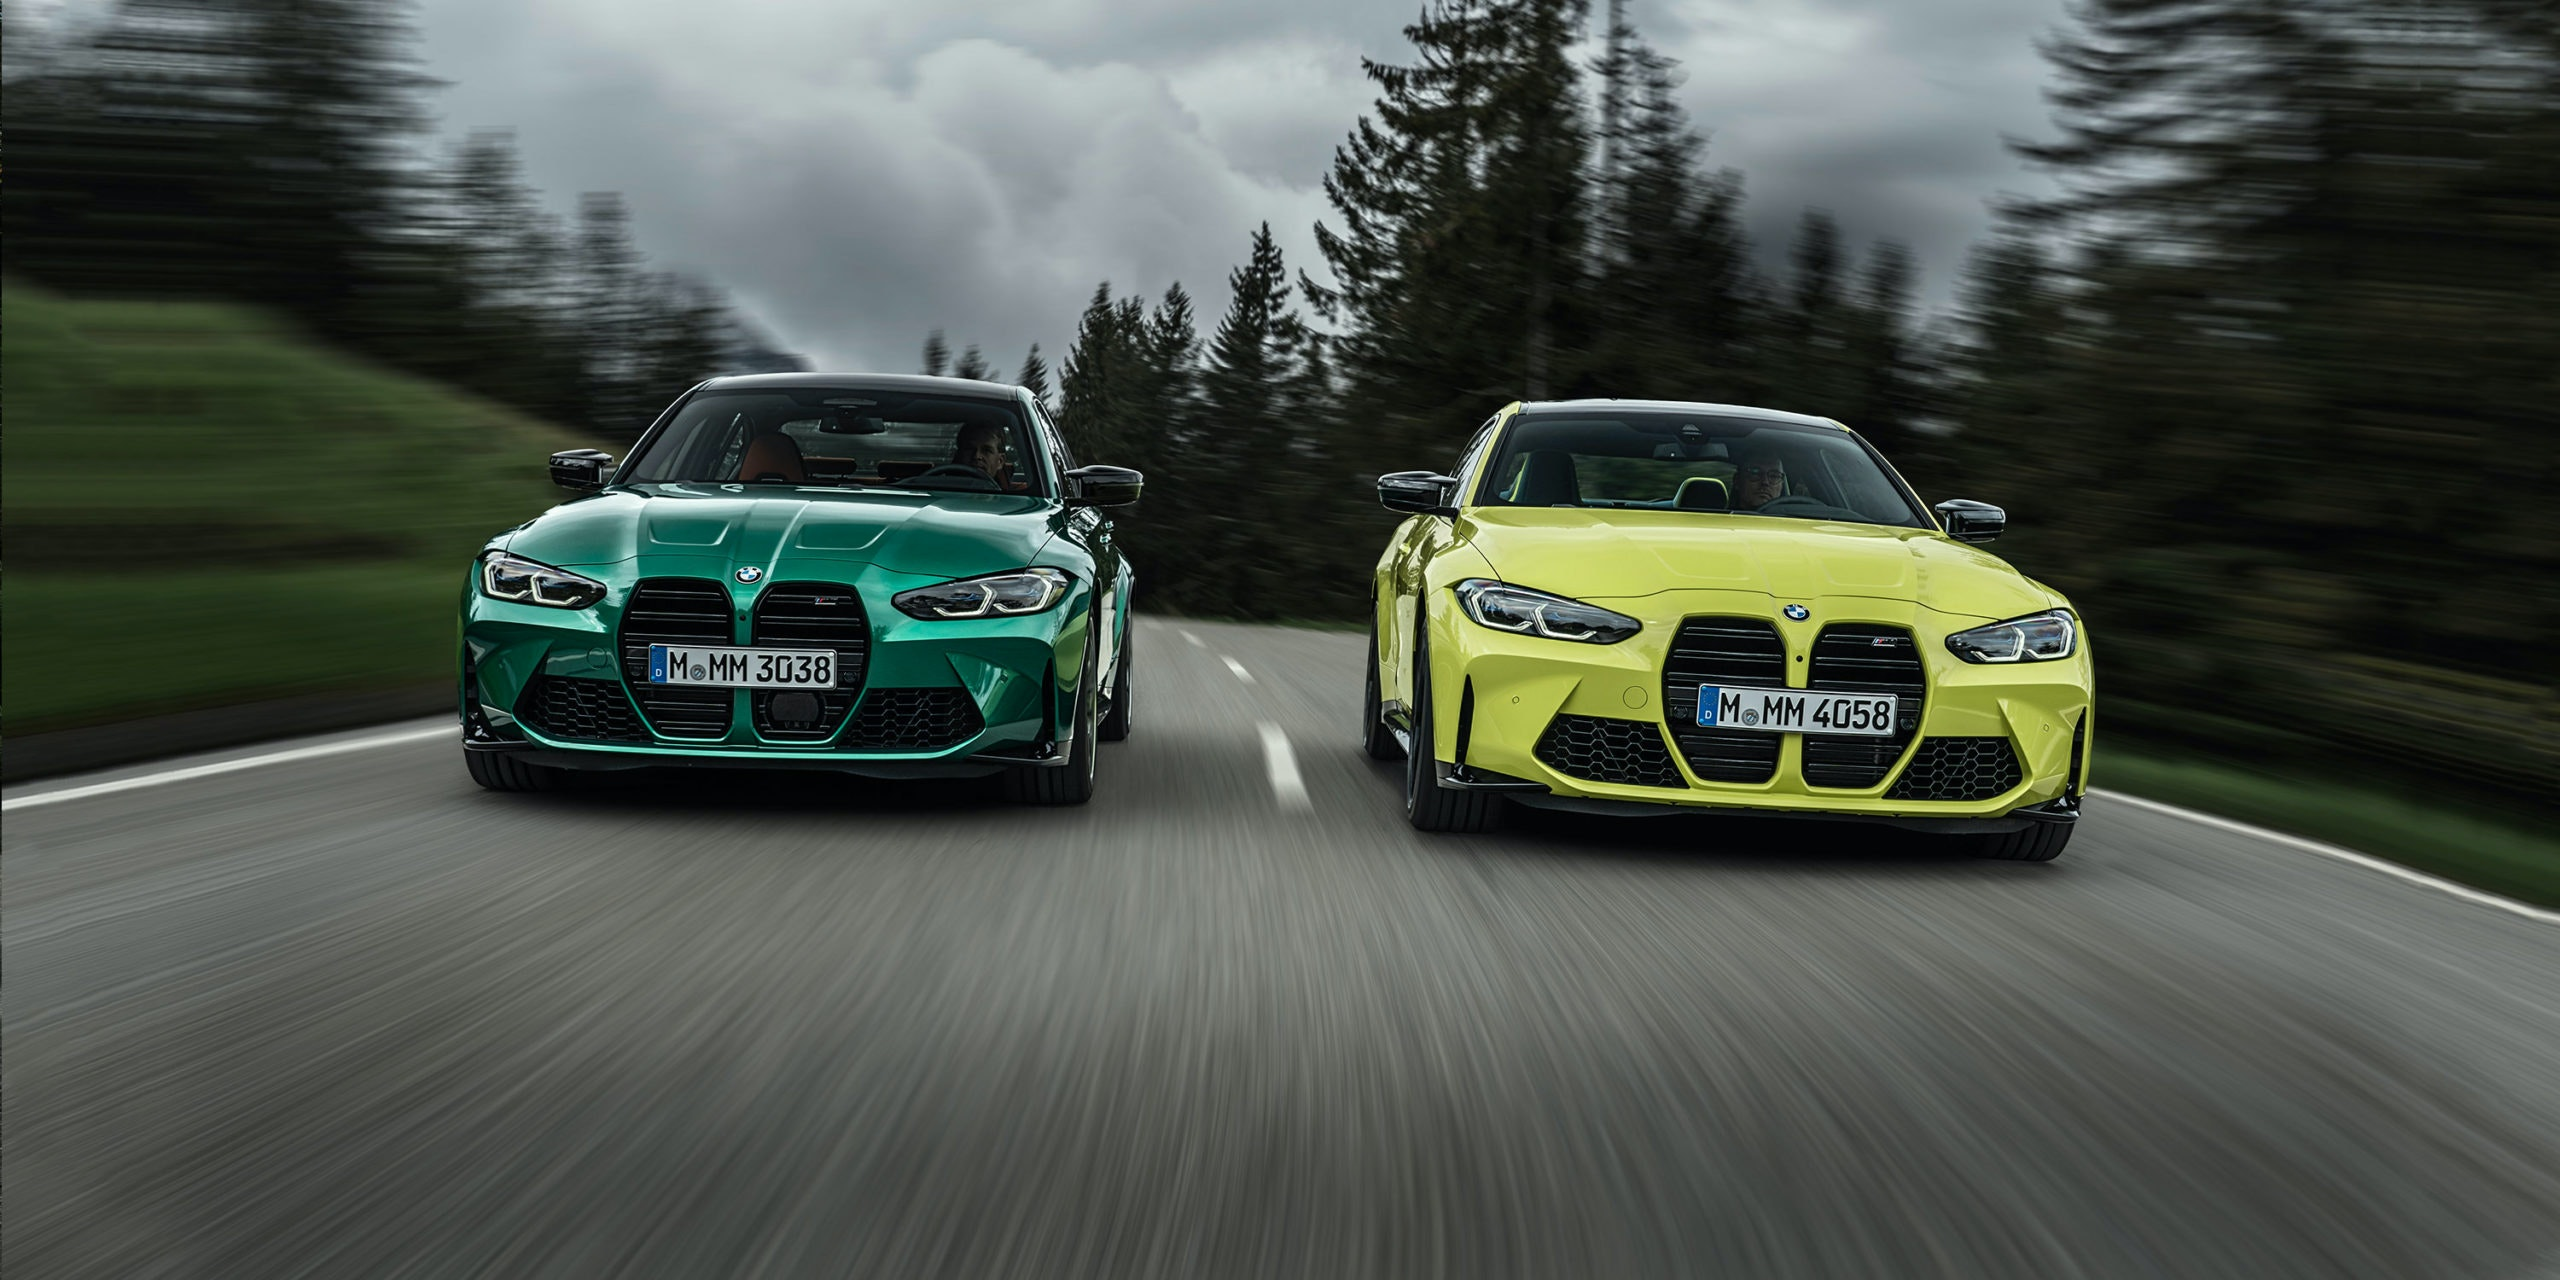 New 2021 Bmw M3 And M4 Competition Revealed Price Specs And Release Date Carwow